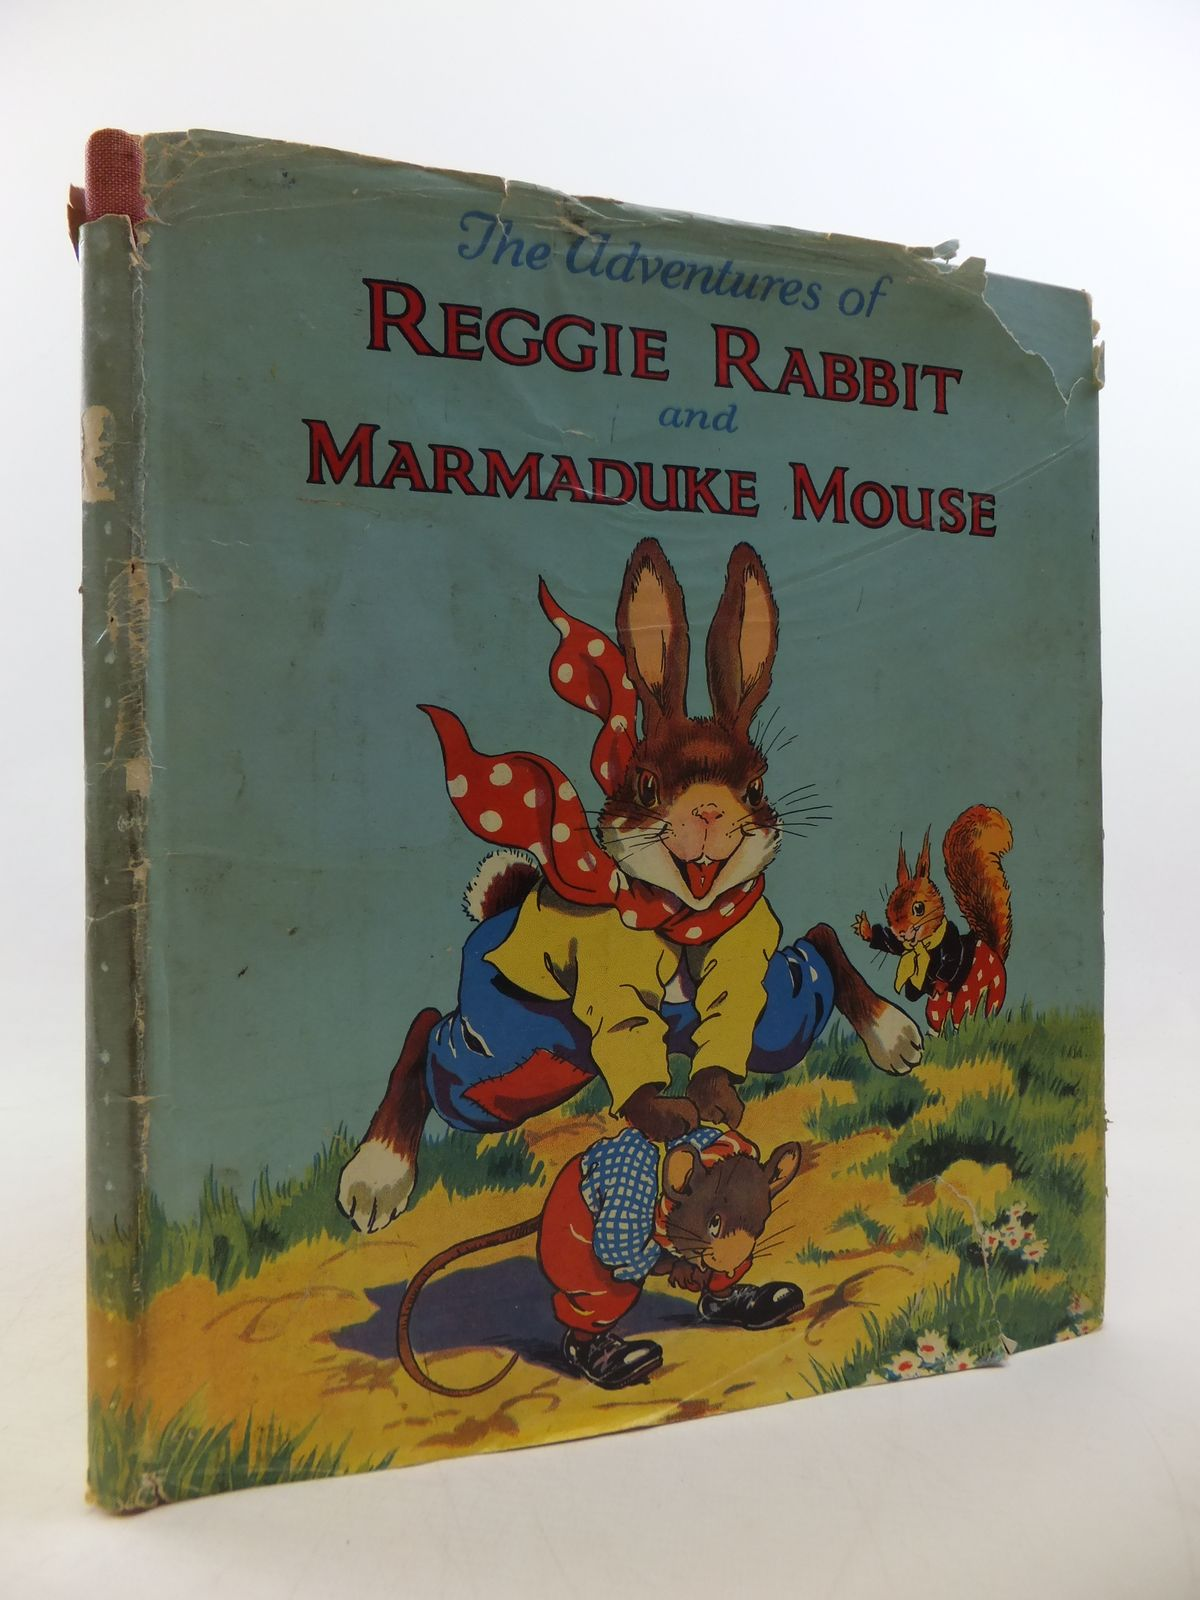 Photo of THE ADVENTURES OF REGGIE RABBIT AND MARMADUKE MOUSE written by Harford, V. illustrated by Davie, E.H. published by Juvenile Productions Ltd. (STOCK CODE: 2113271)  for sale by Stella & Rose's Books